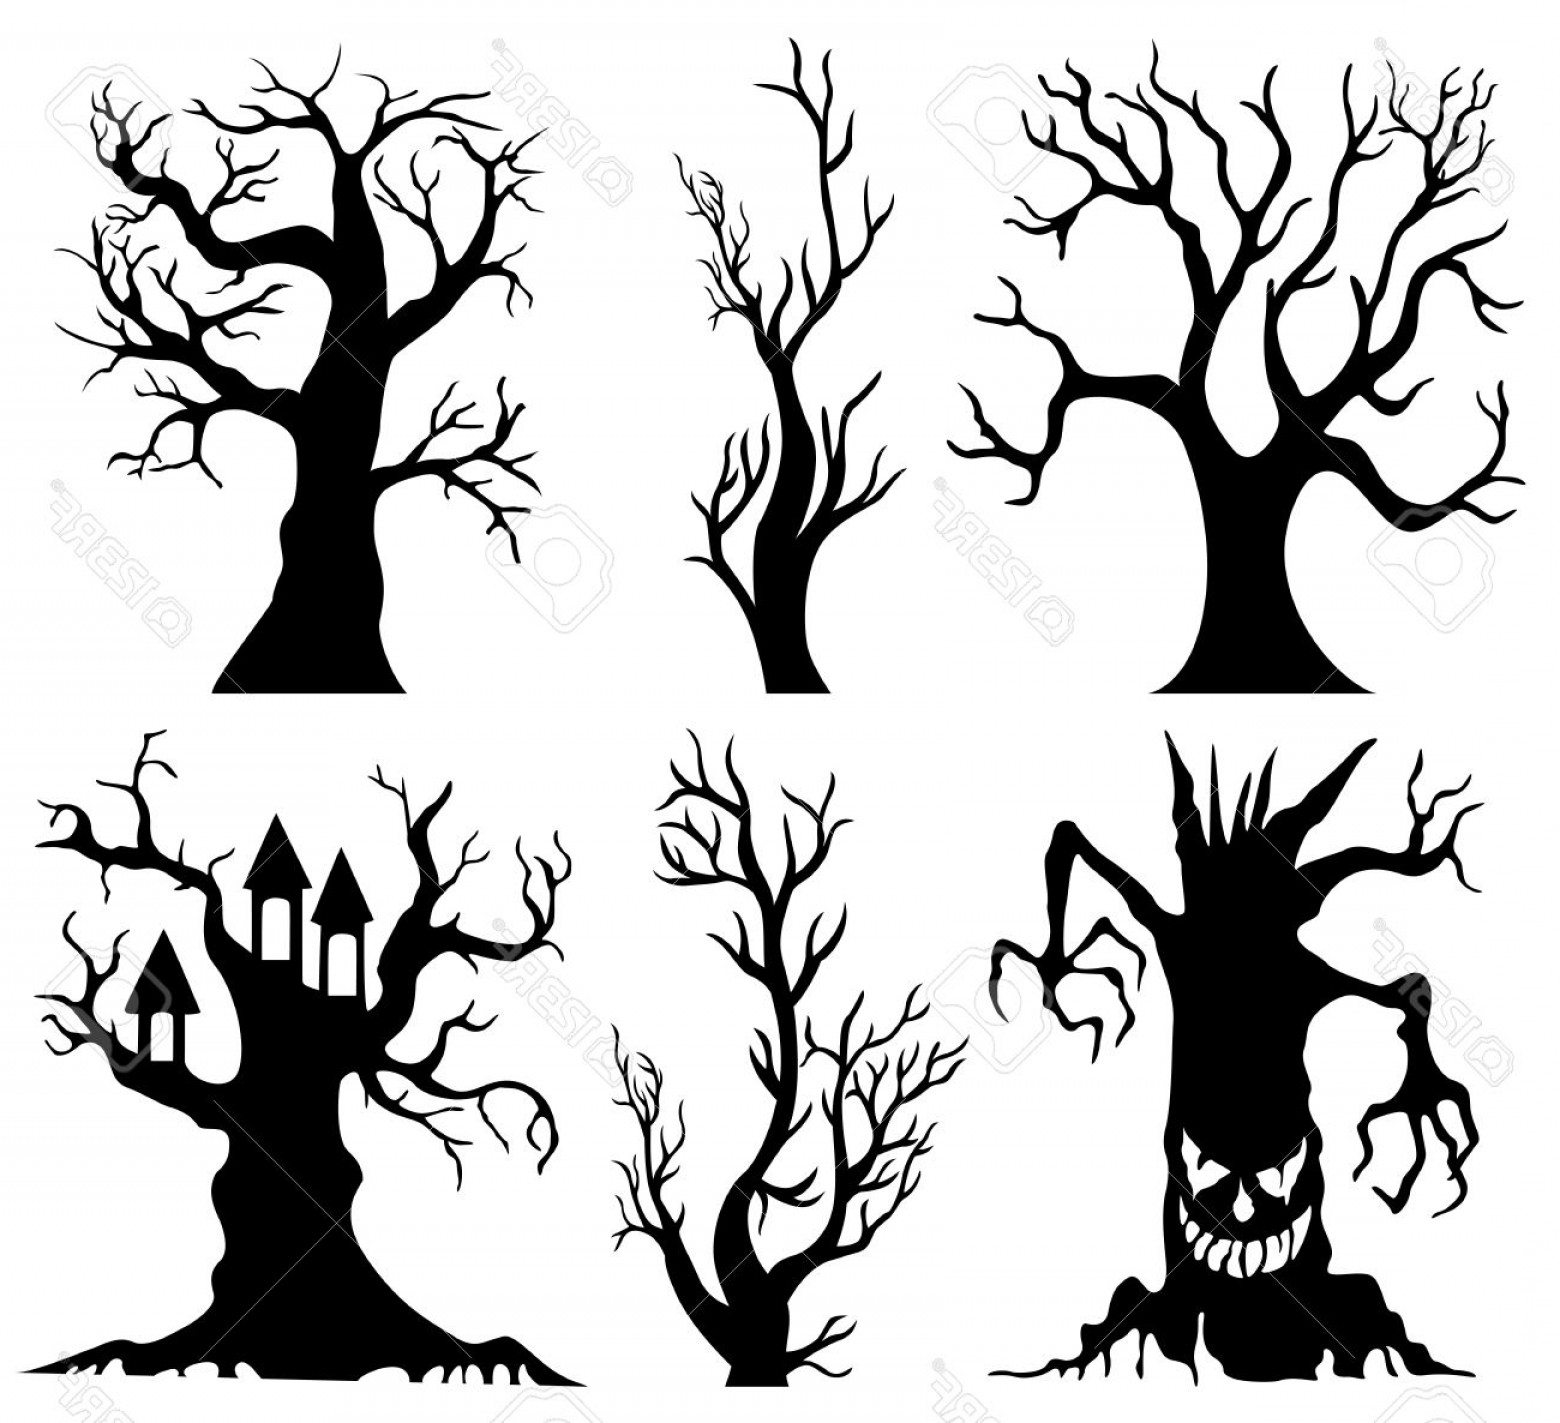 Contoon Free Black Vector Tree: Photostock Vector Set Of Spooky Halloween Tree Cartoon